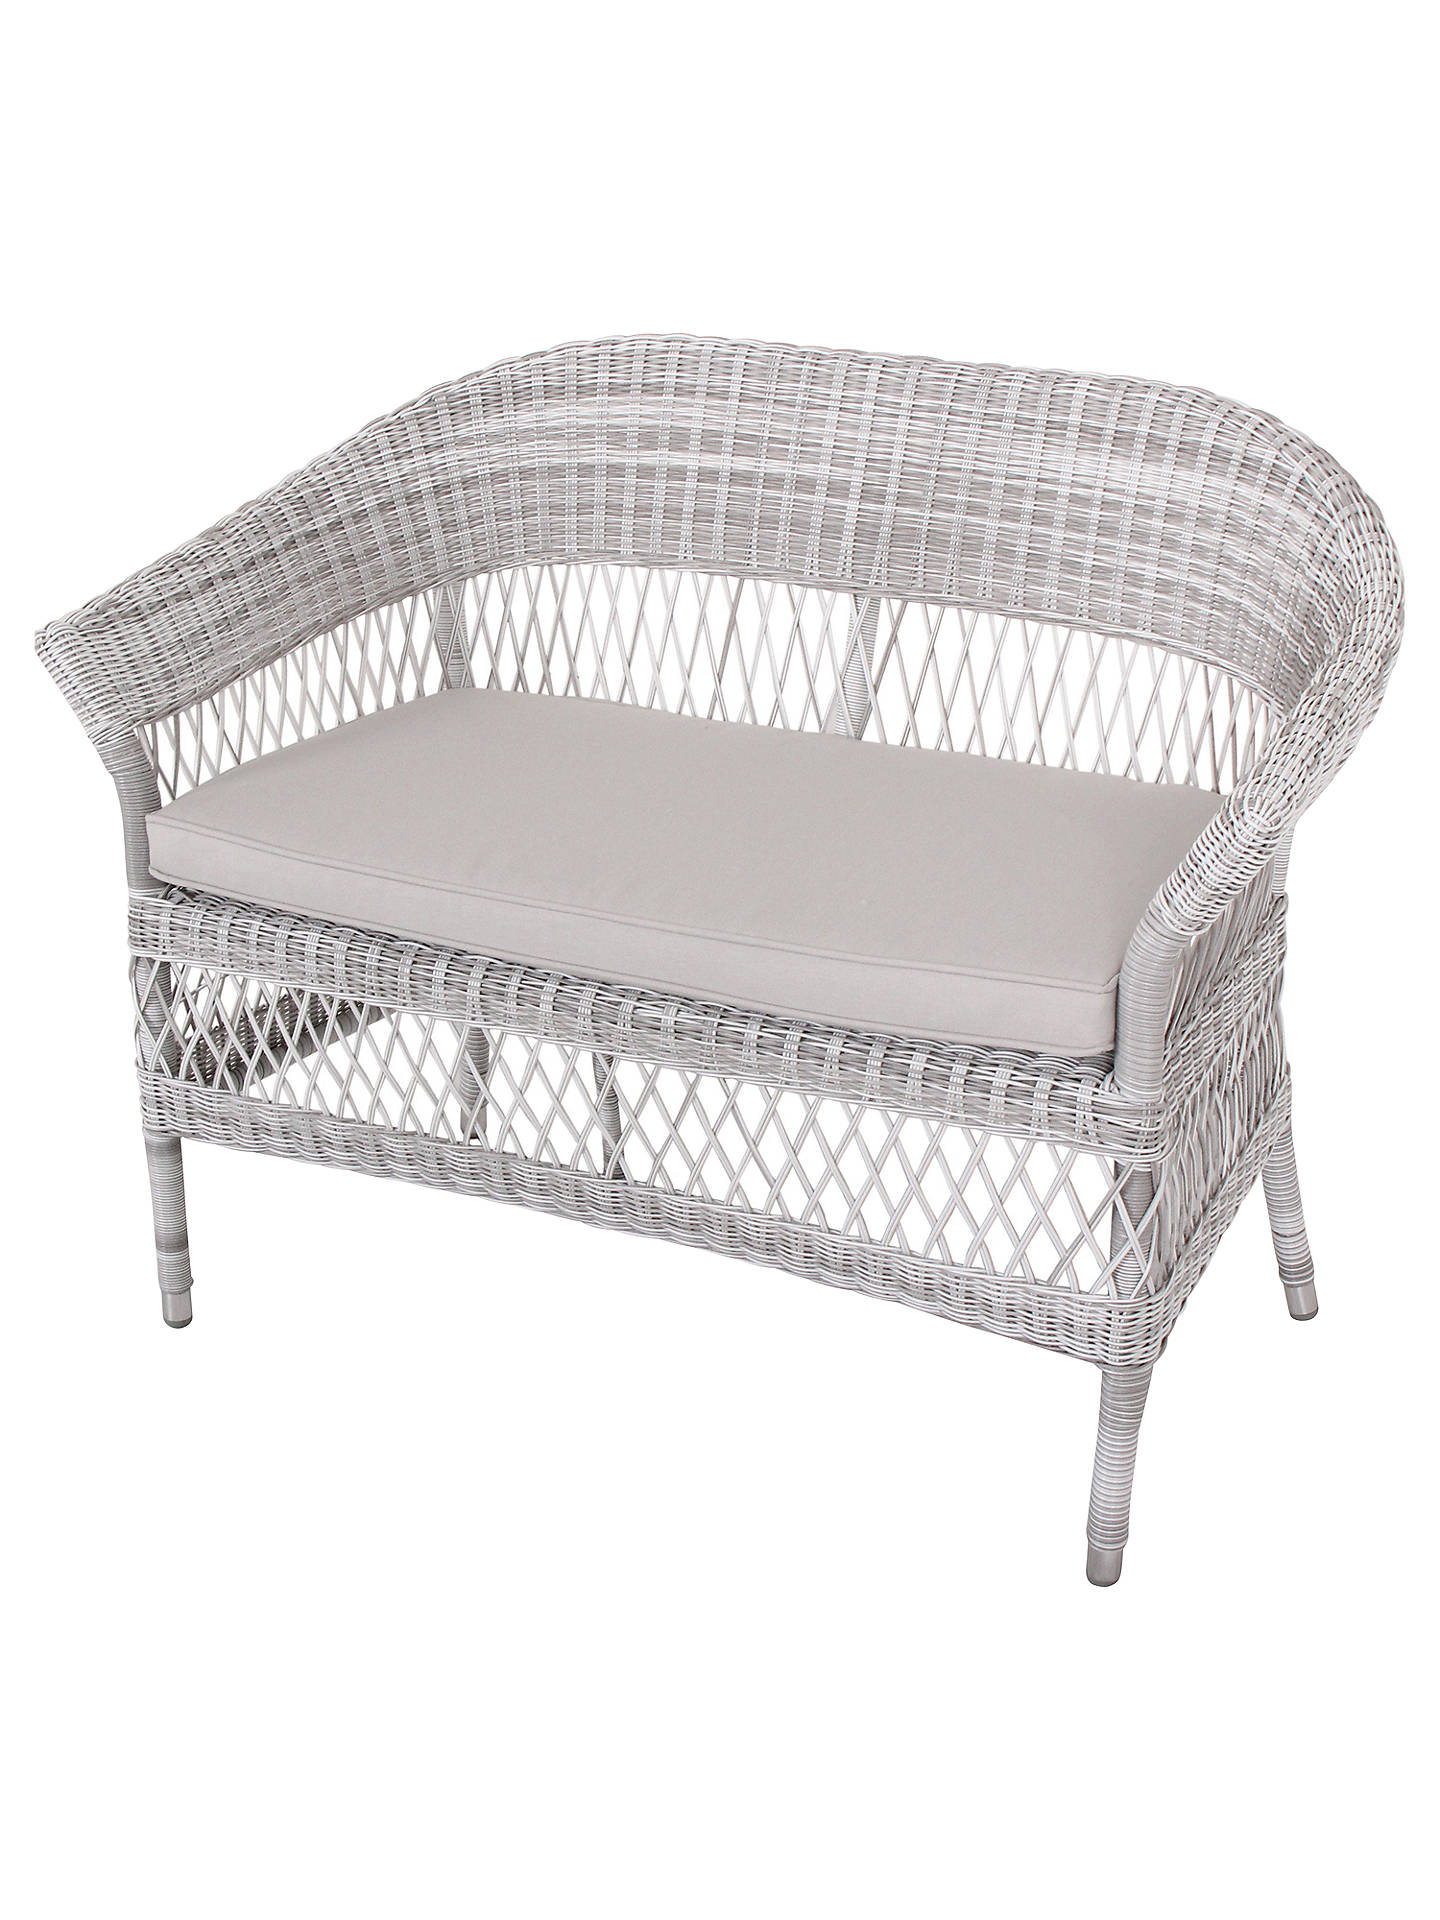 ... BuyJohn Lewis Hera 2 Seater Wicker Sofa Online At Johnlewis.com ...